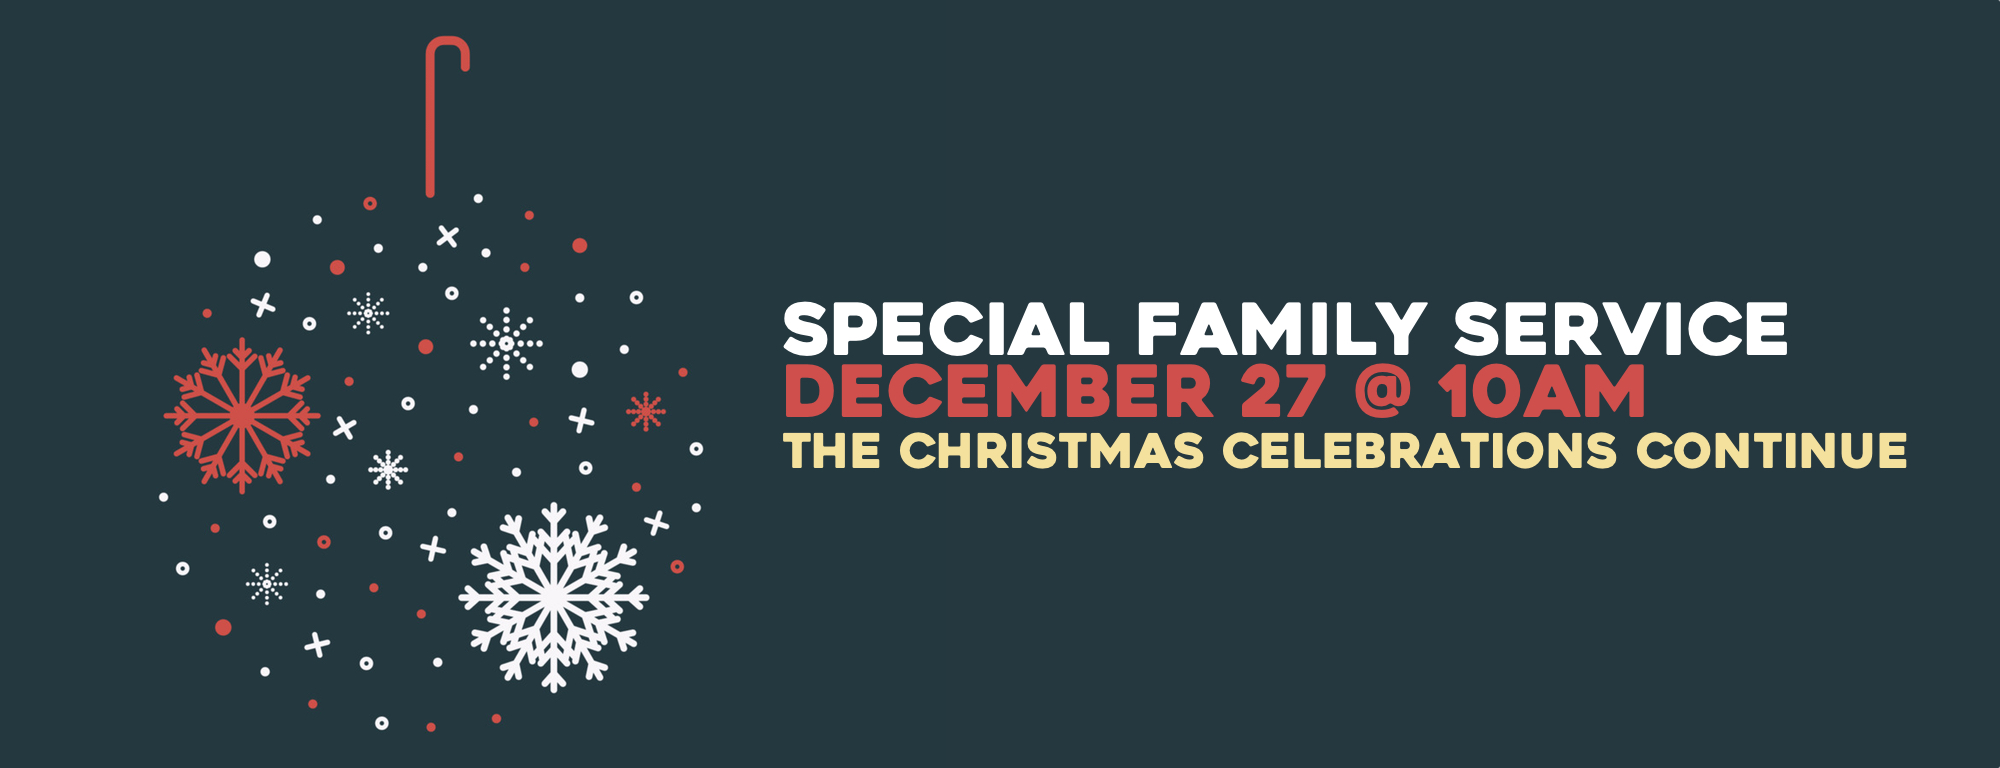 We will wrap up our christmas celebrations with this very special family service! join us at 10am